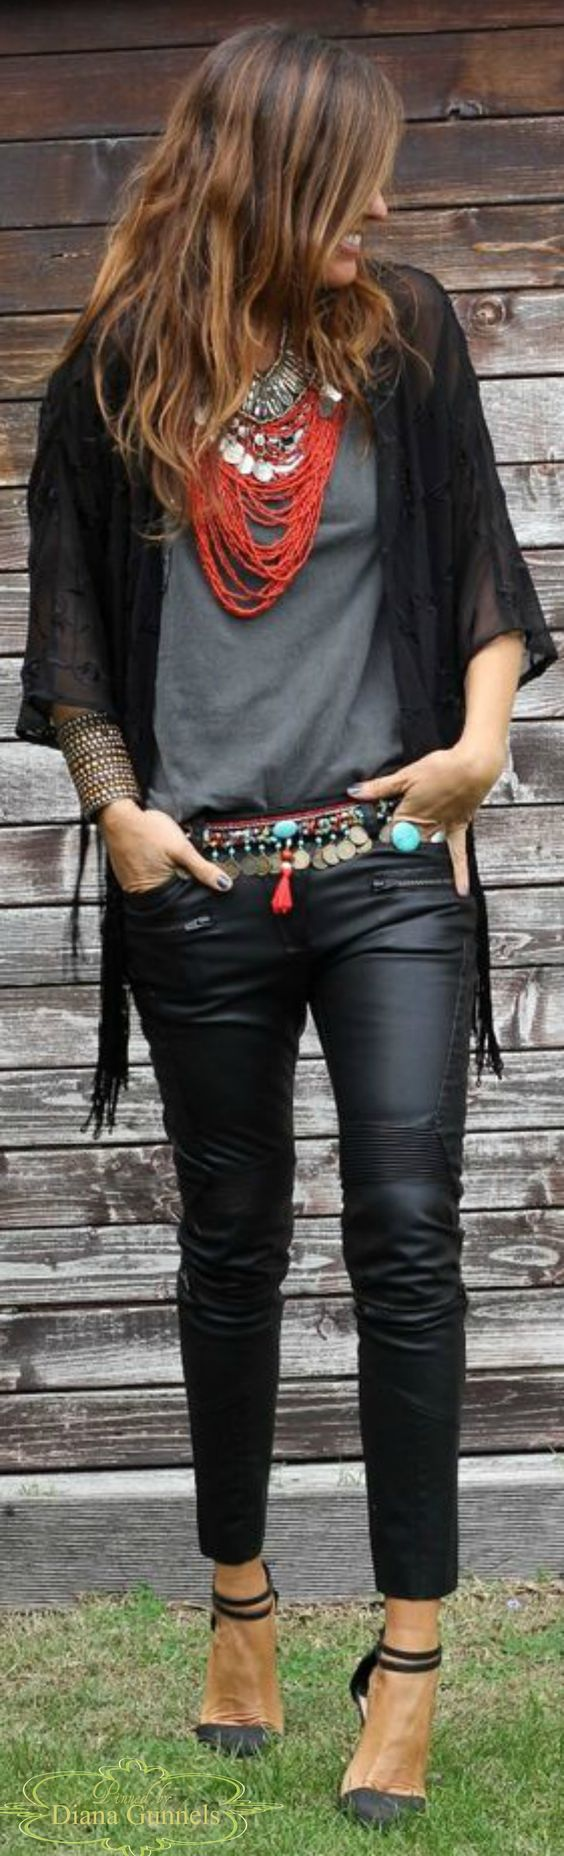 Boho Style, I'd probably wear jeans instead of leather: